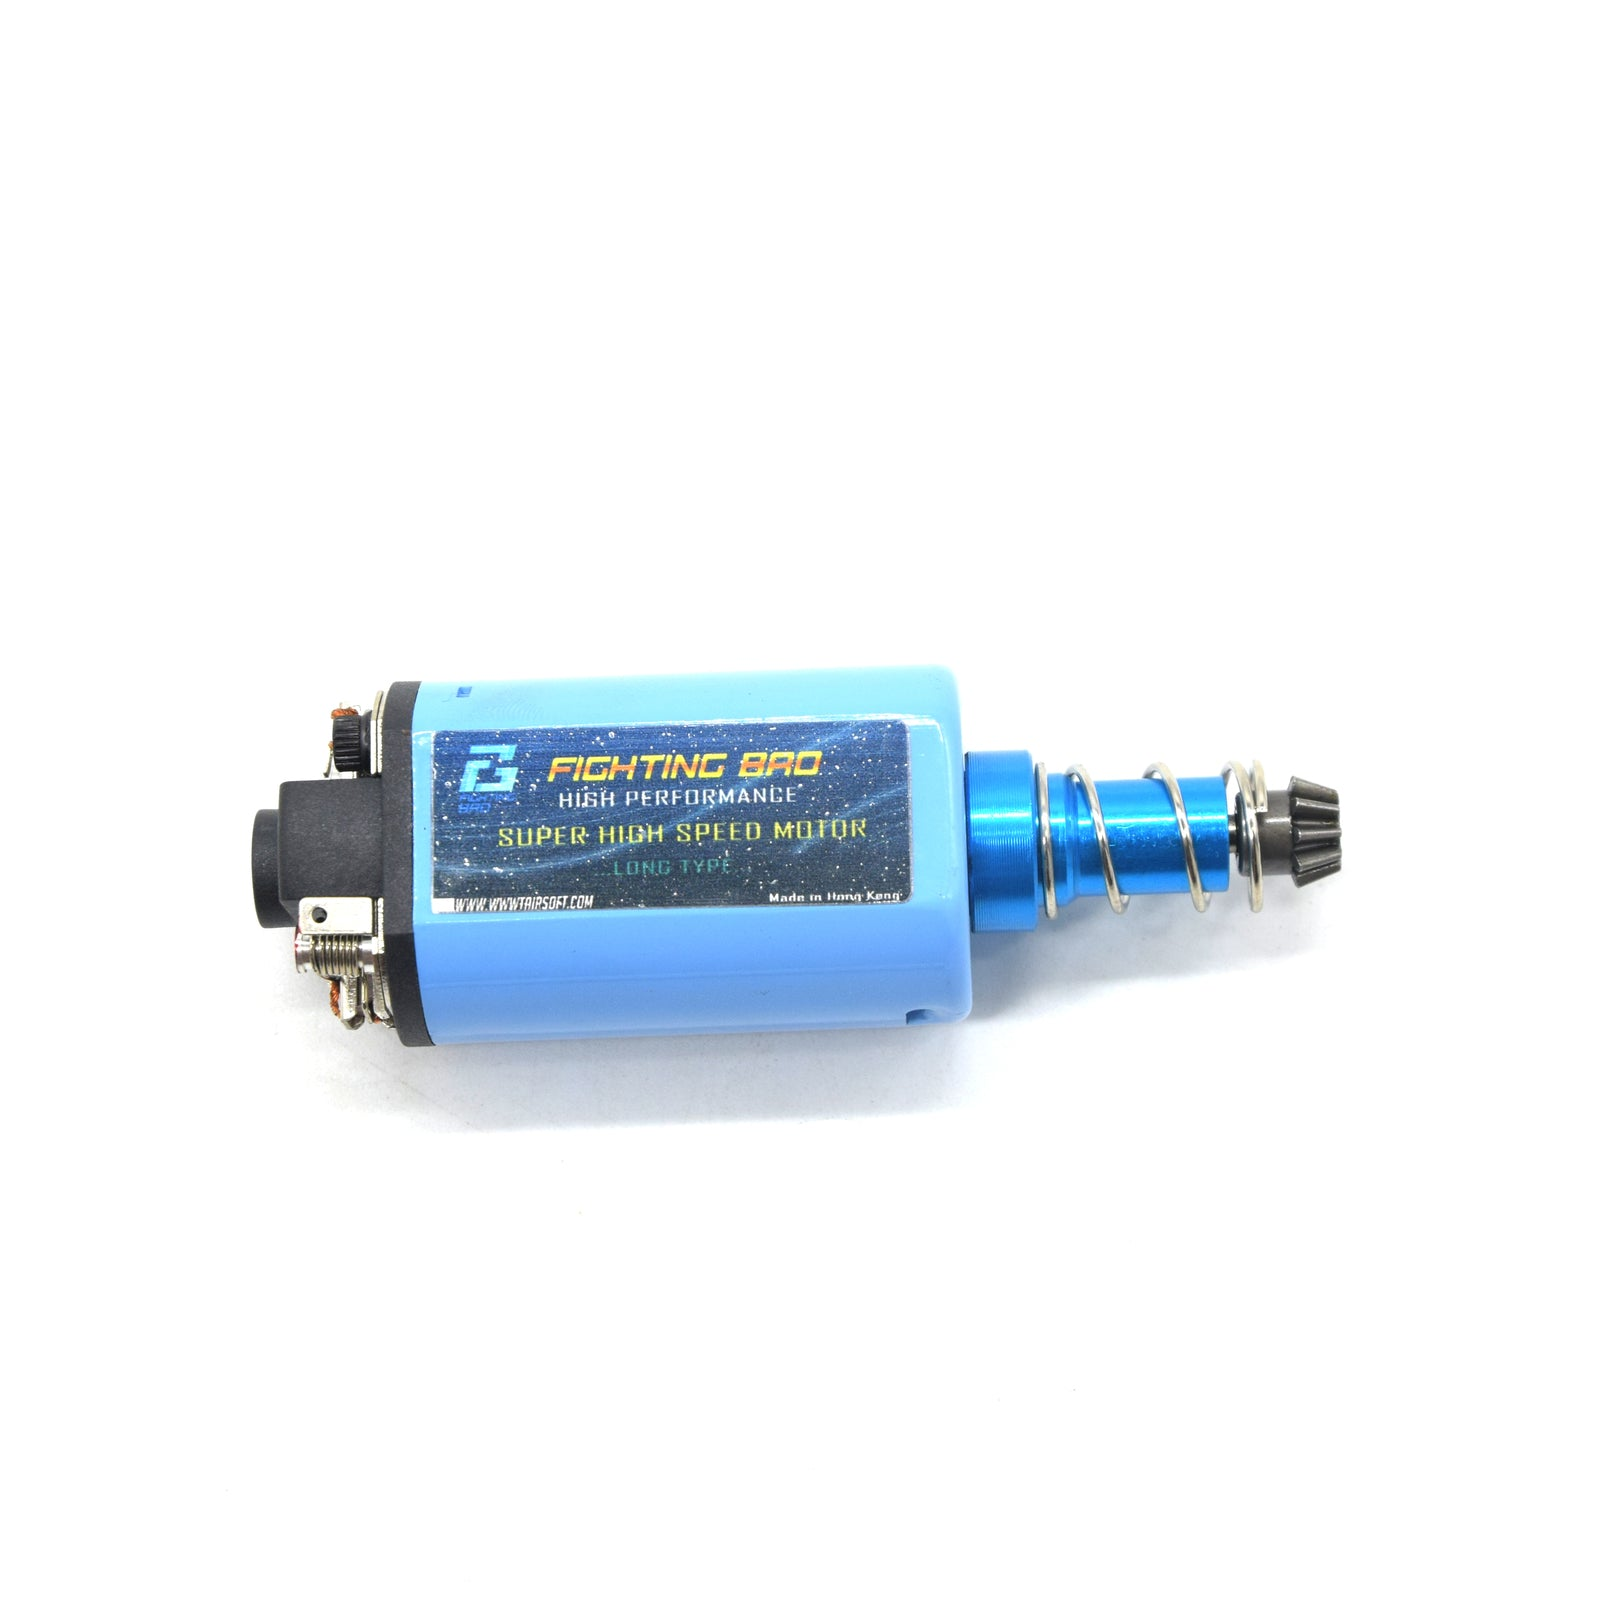 FIGHTINGBRO MOTOR - BLUE (23.5k RPM) - Command Elite Hobbies